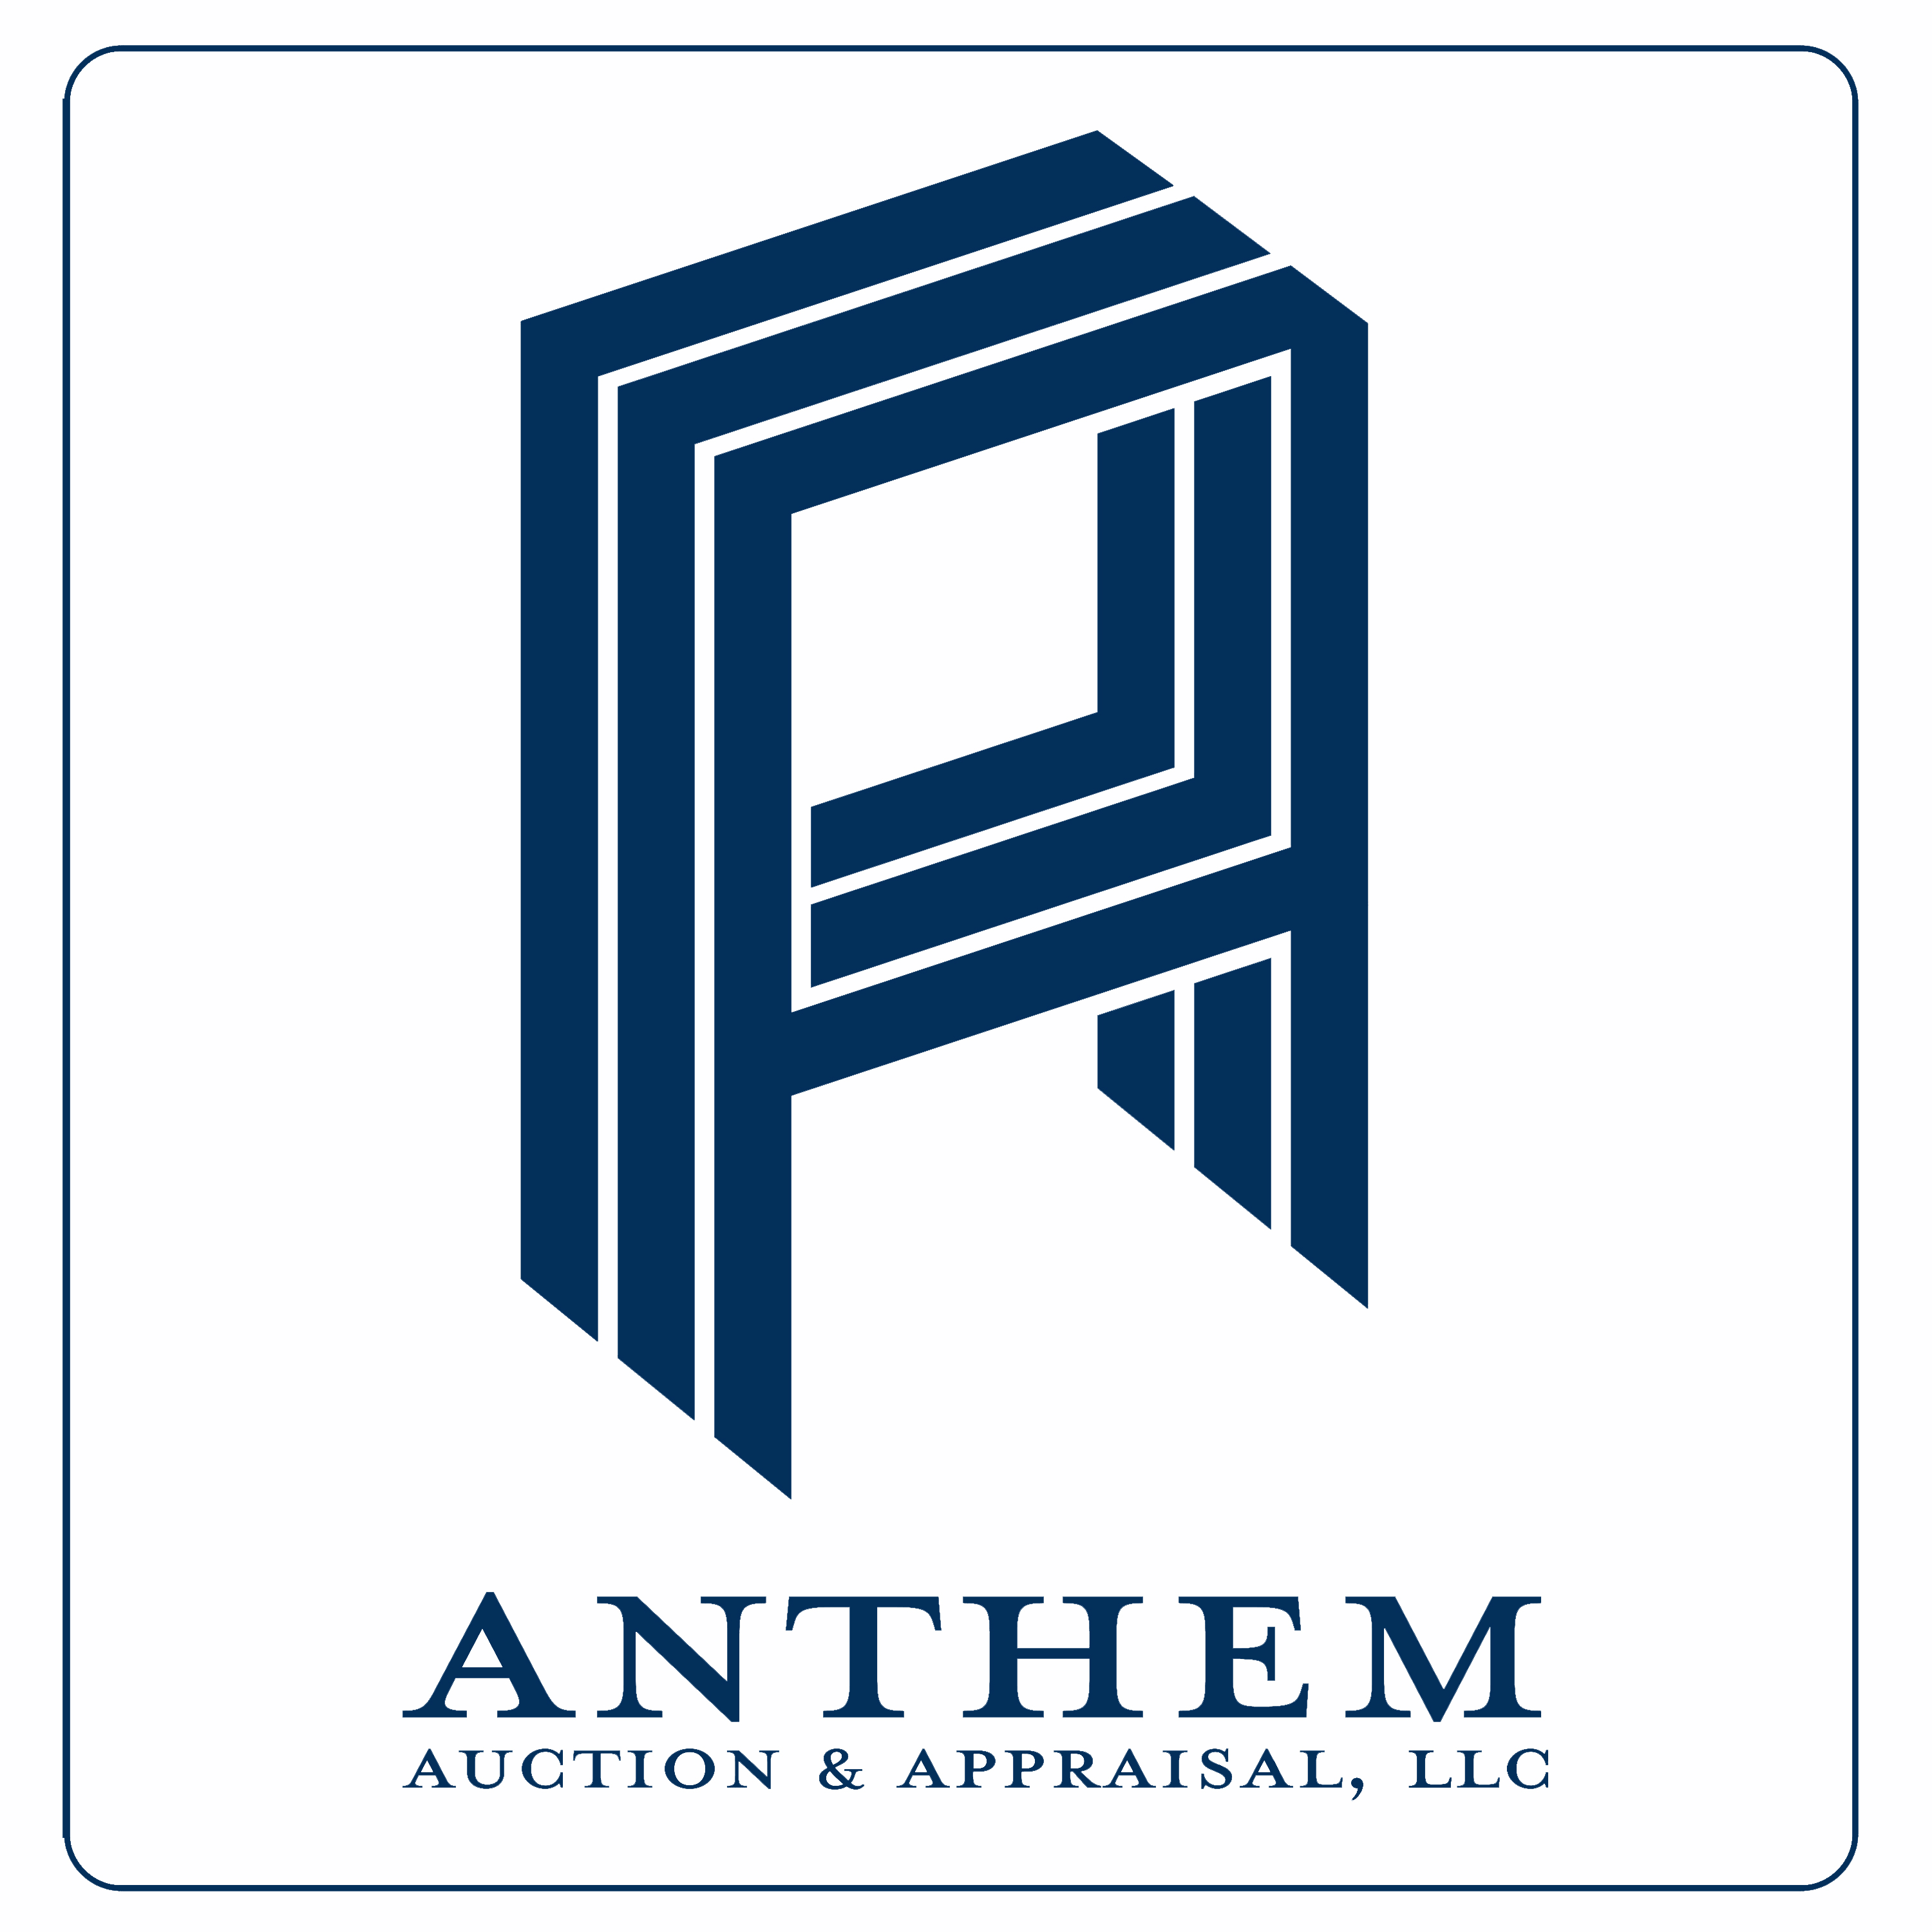 Anthem Auction & Appraisal, LLC